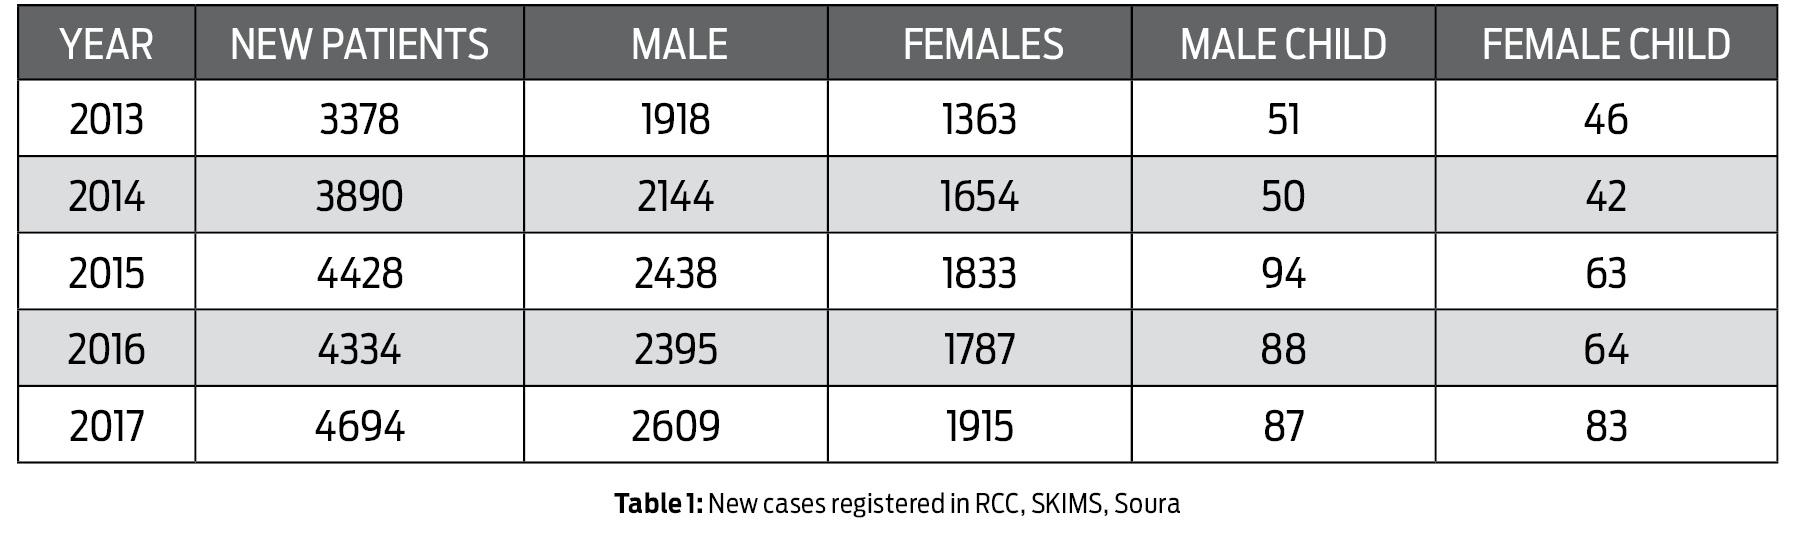 Caught by Cancer Story by Saima Bhat Table 1: New cases registered in RCC, SKIMS, Soura